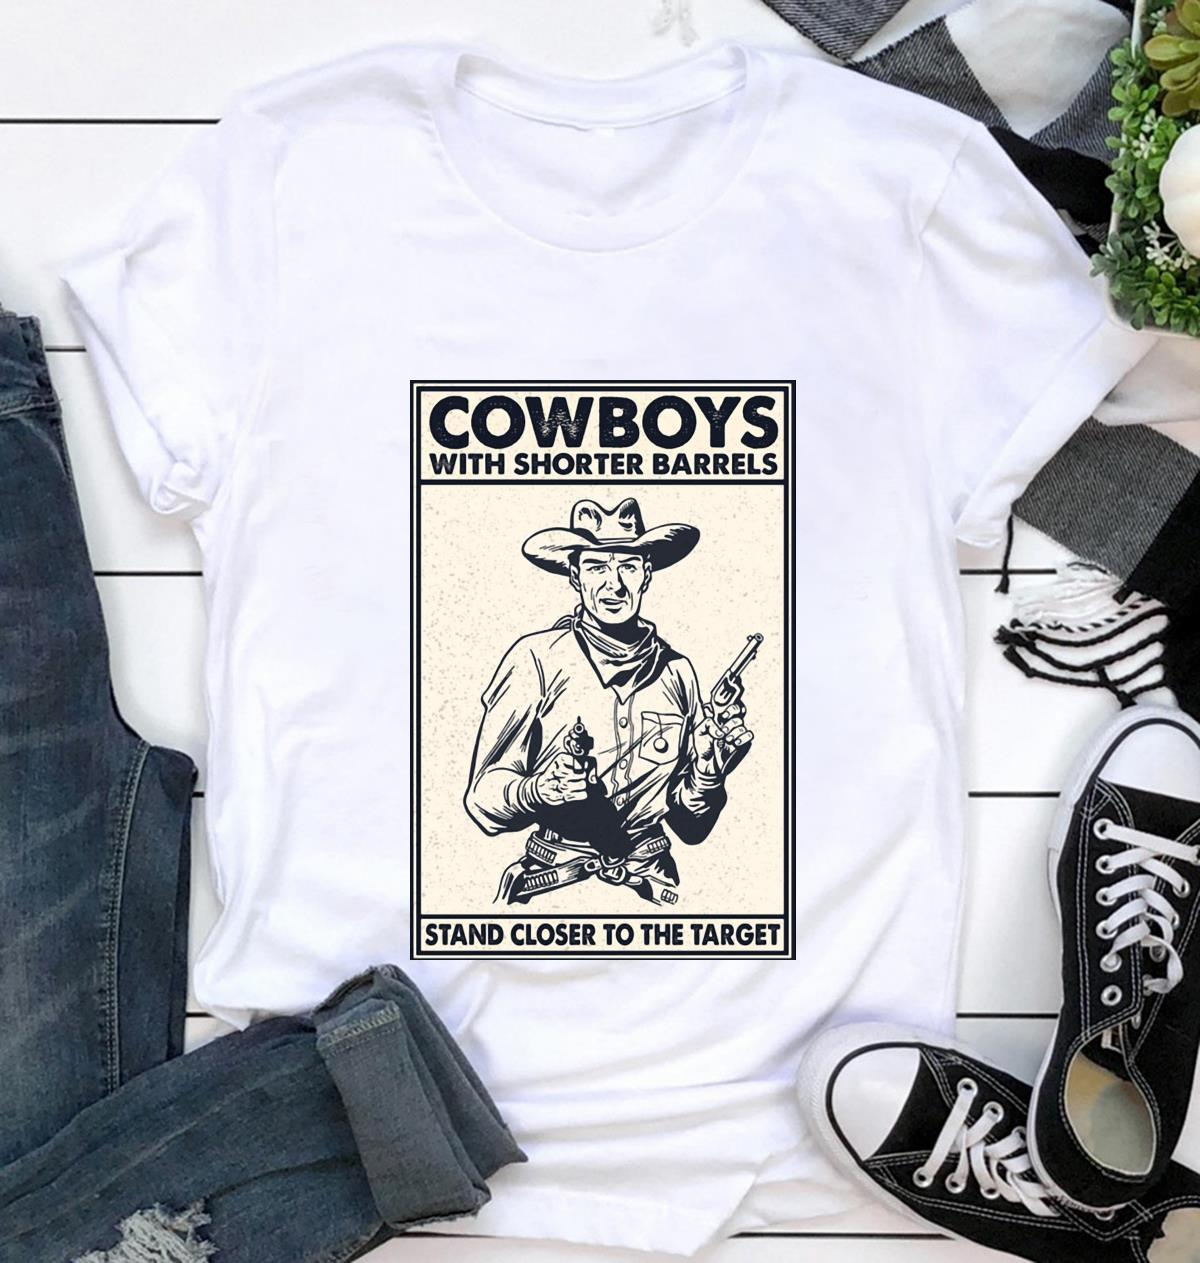 Cowboys with shorter barrels stand close to target poster t-shirt